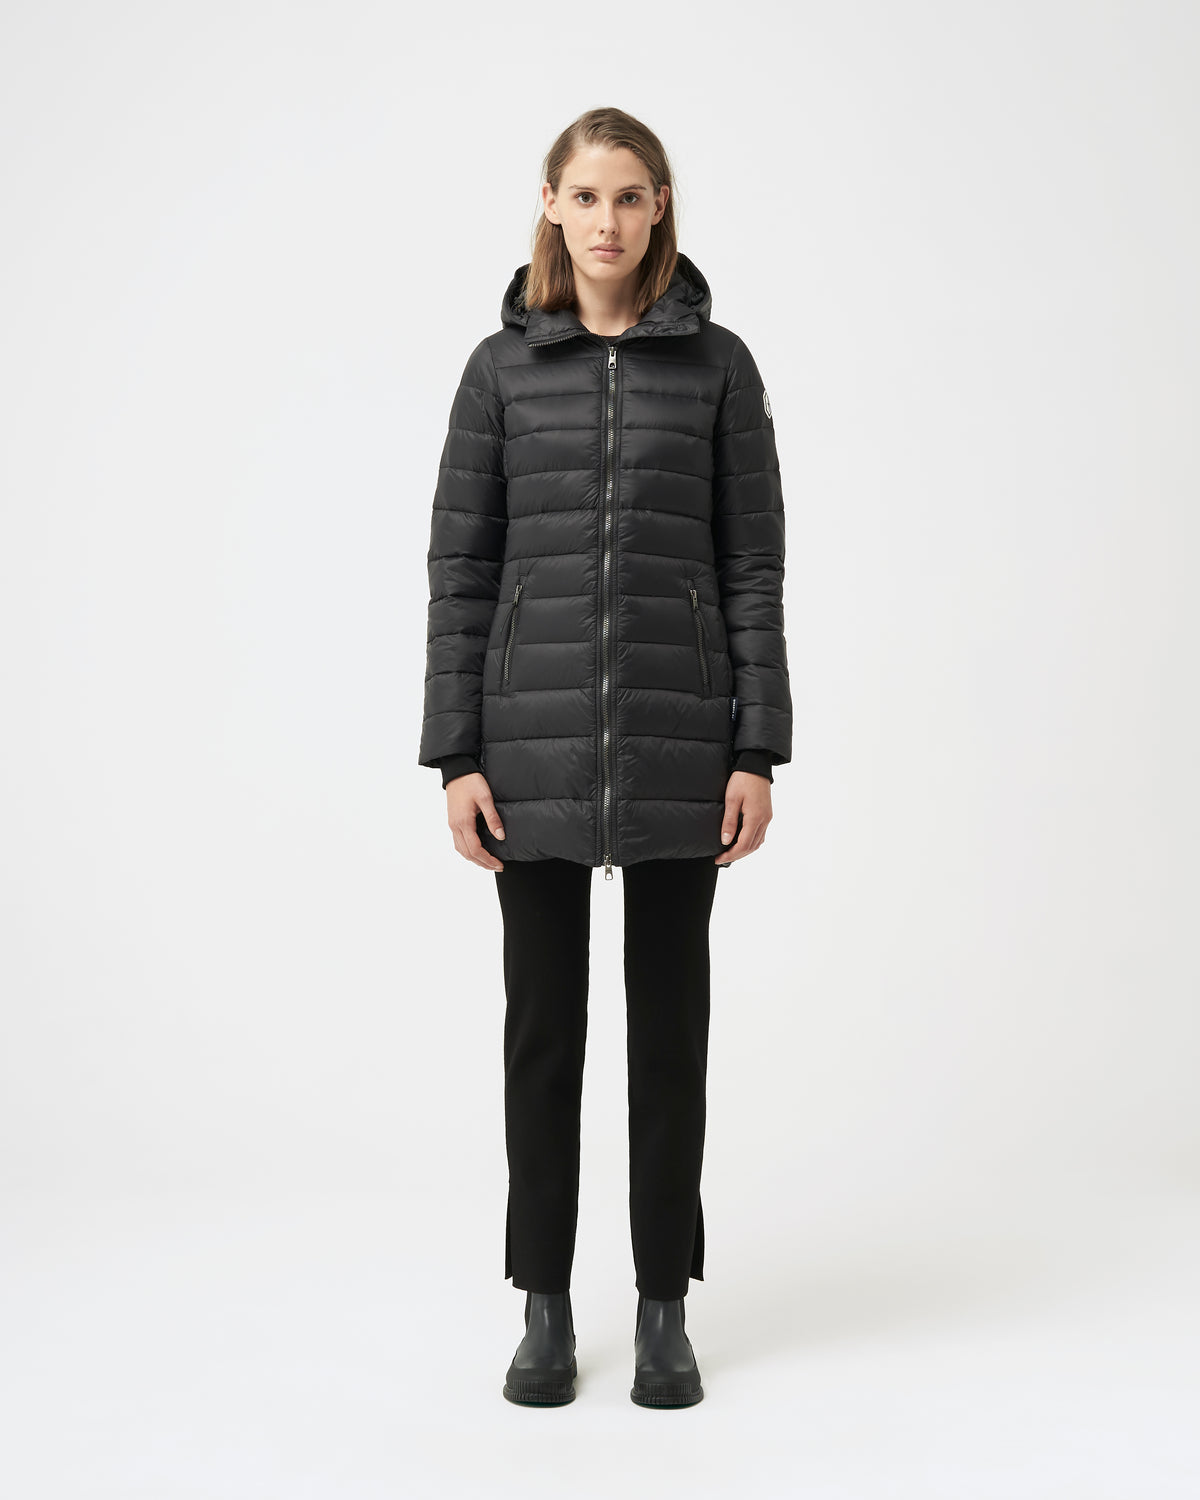 Quartz Co. - Canadian Made Winter Jackets | Lausanne | Manteau Transition | Front